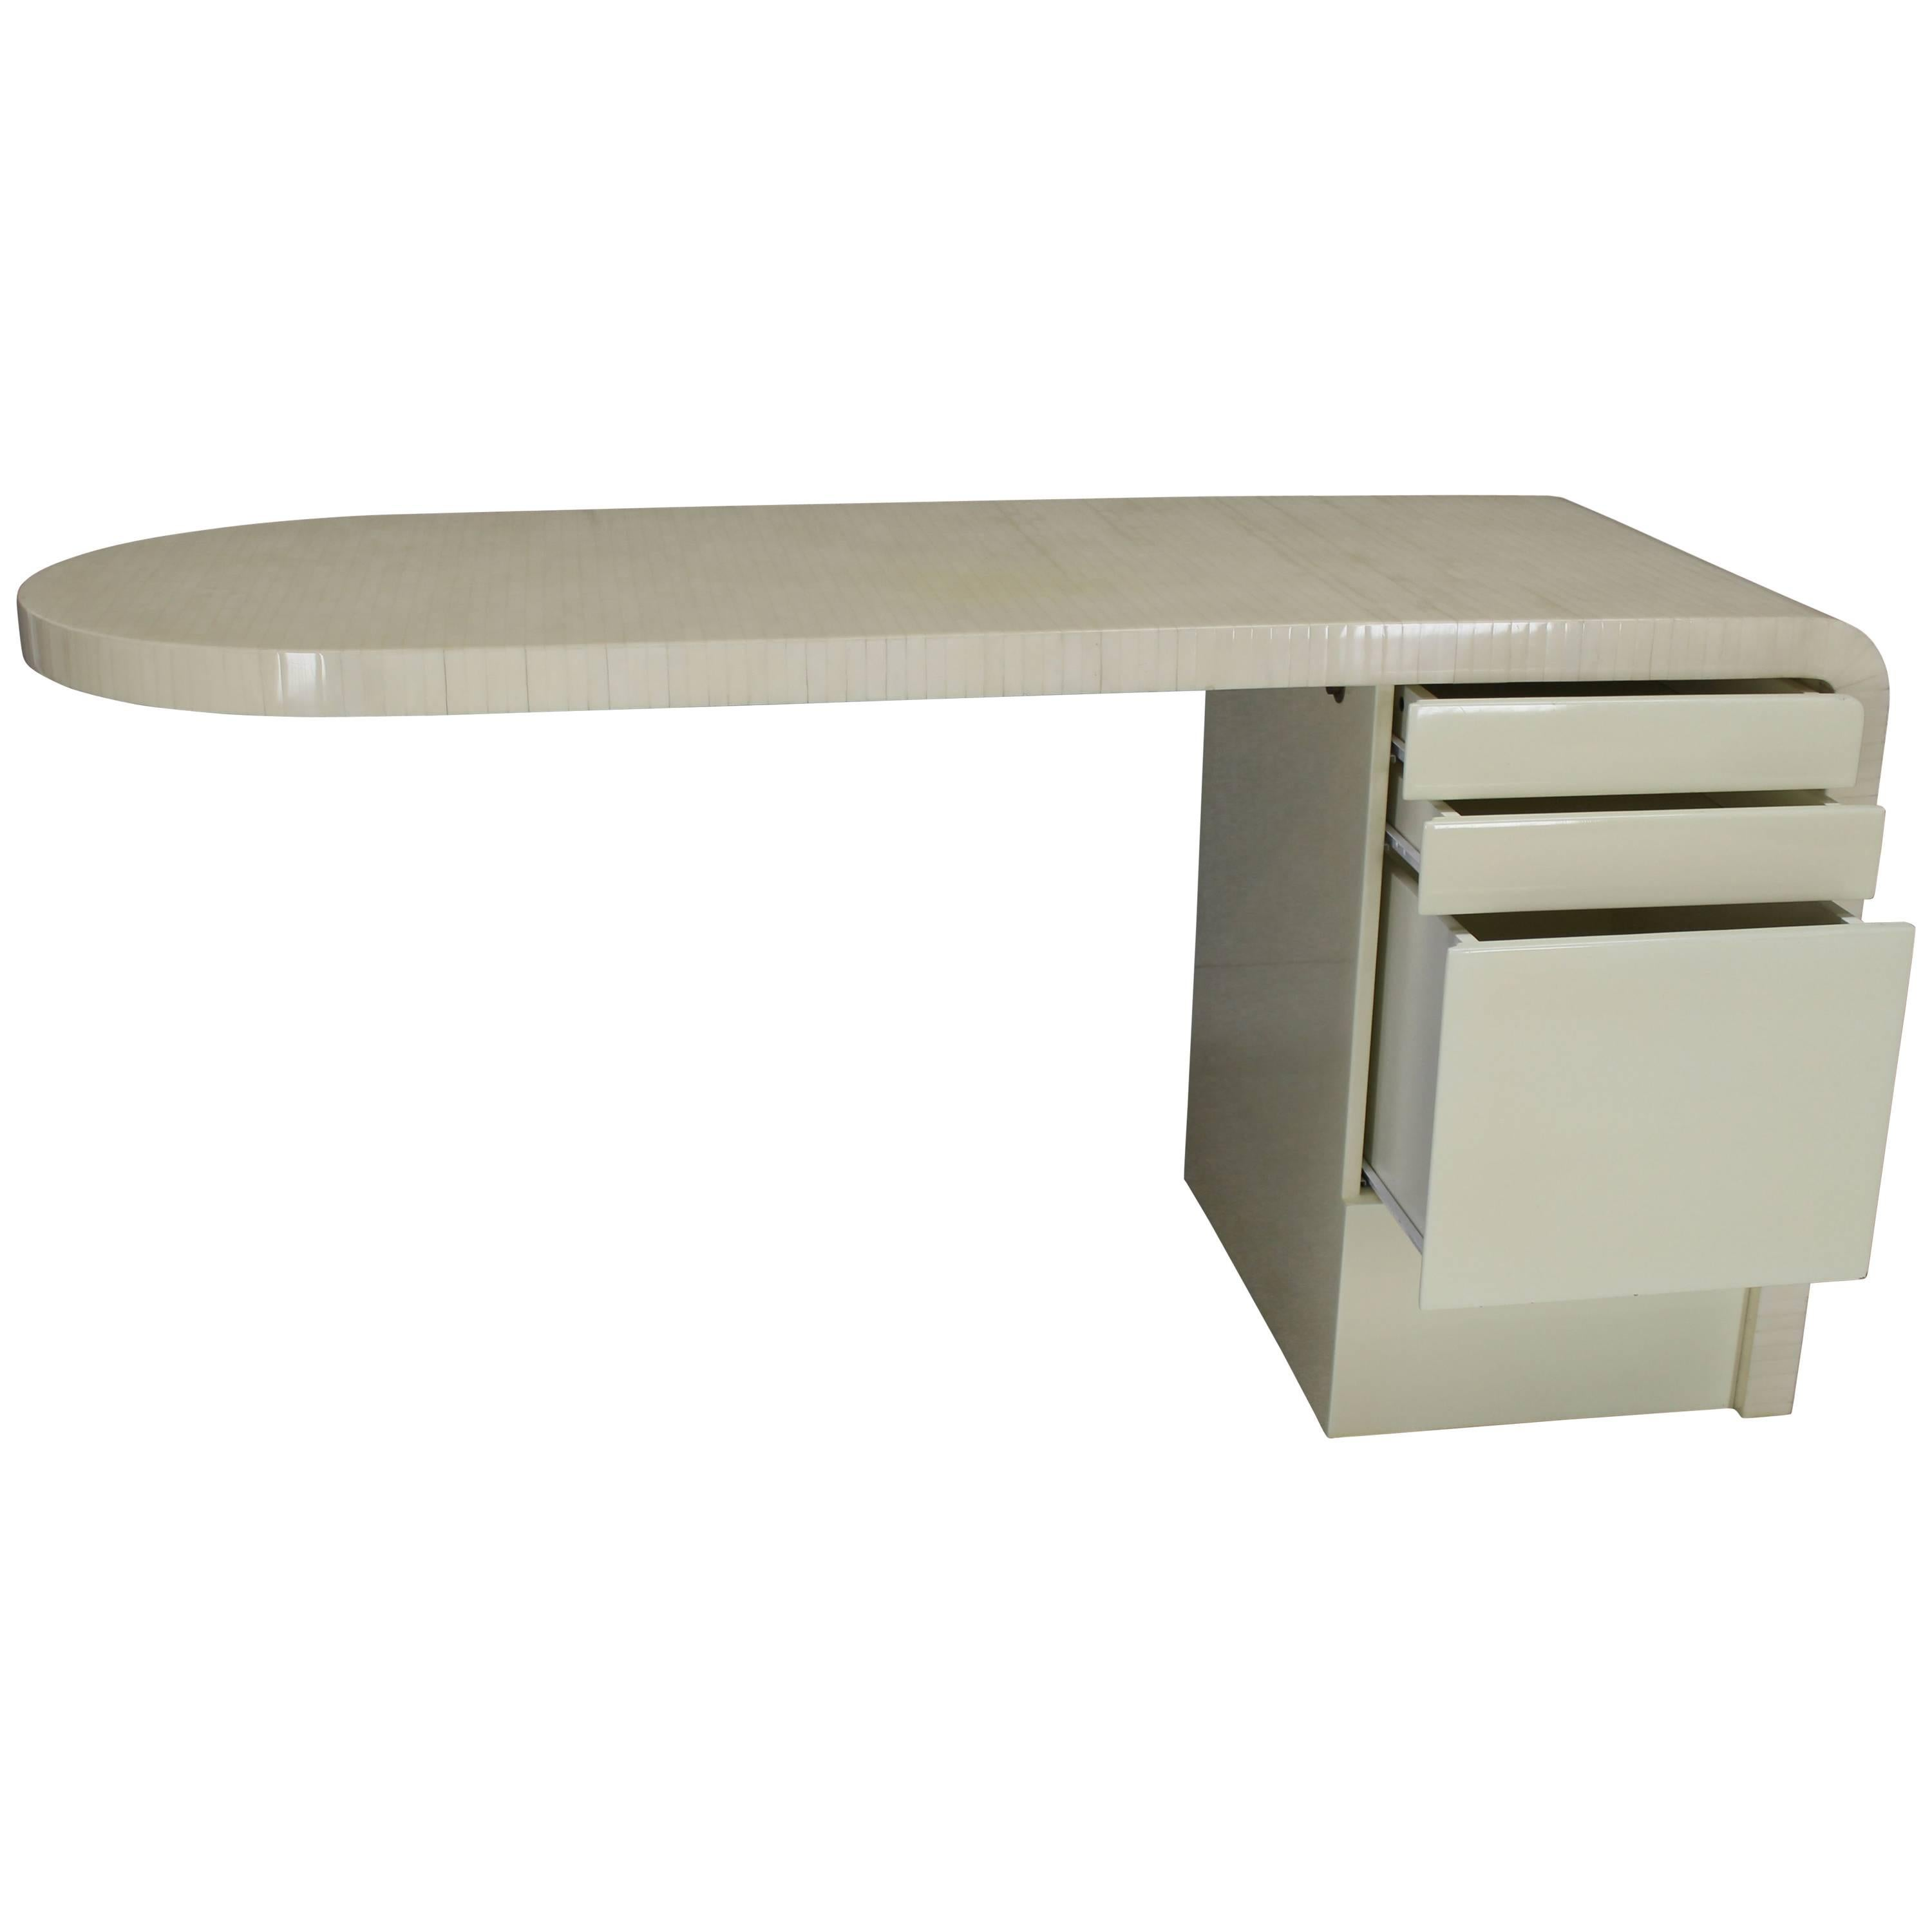 cantilever lacquered white bone tile file drawer desk writing table